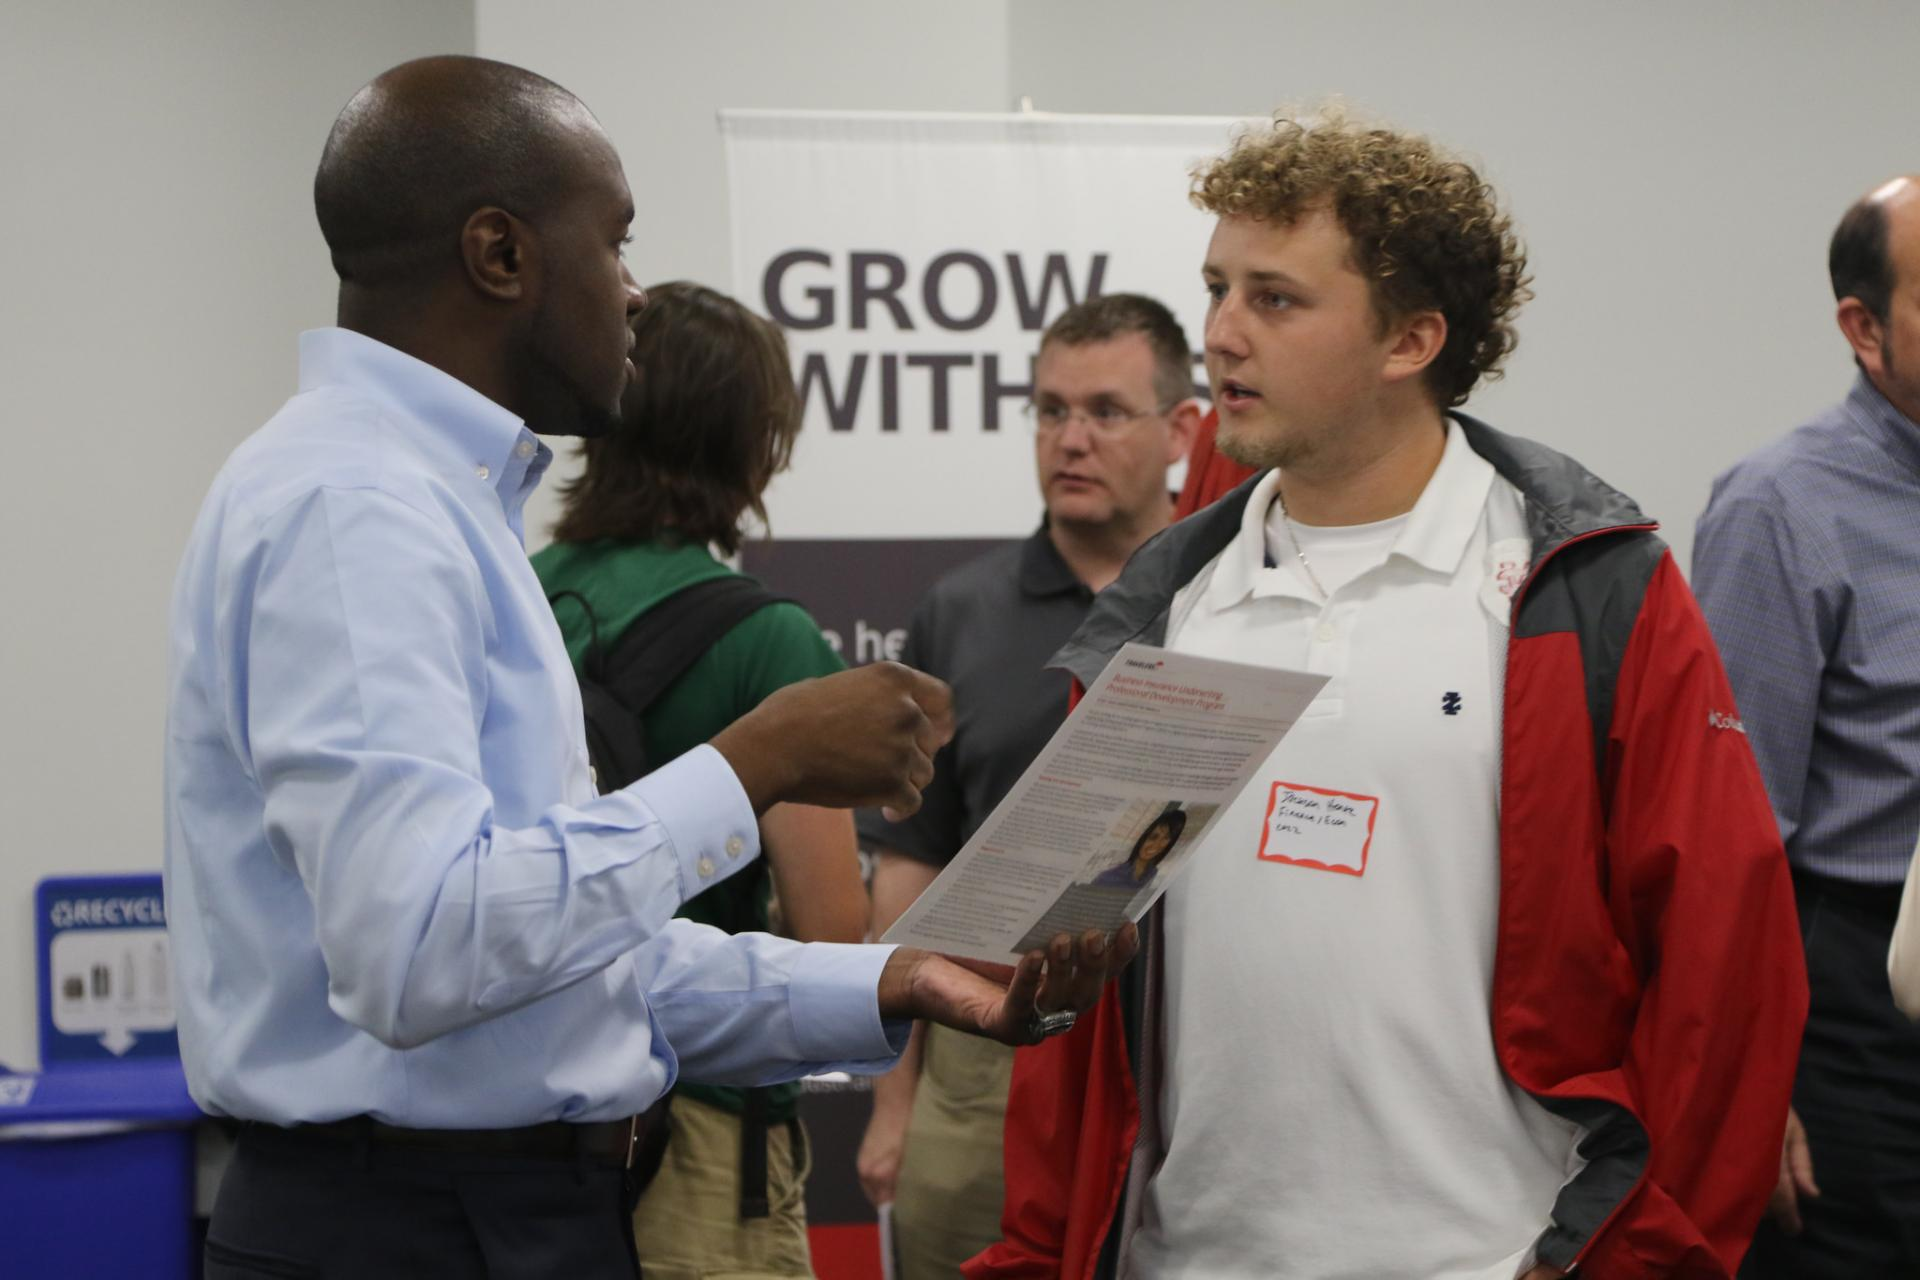 A student meets with a potential employer at the employer meet and greet held at North Central College.